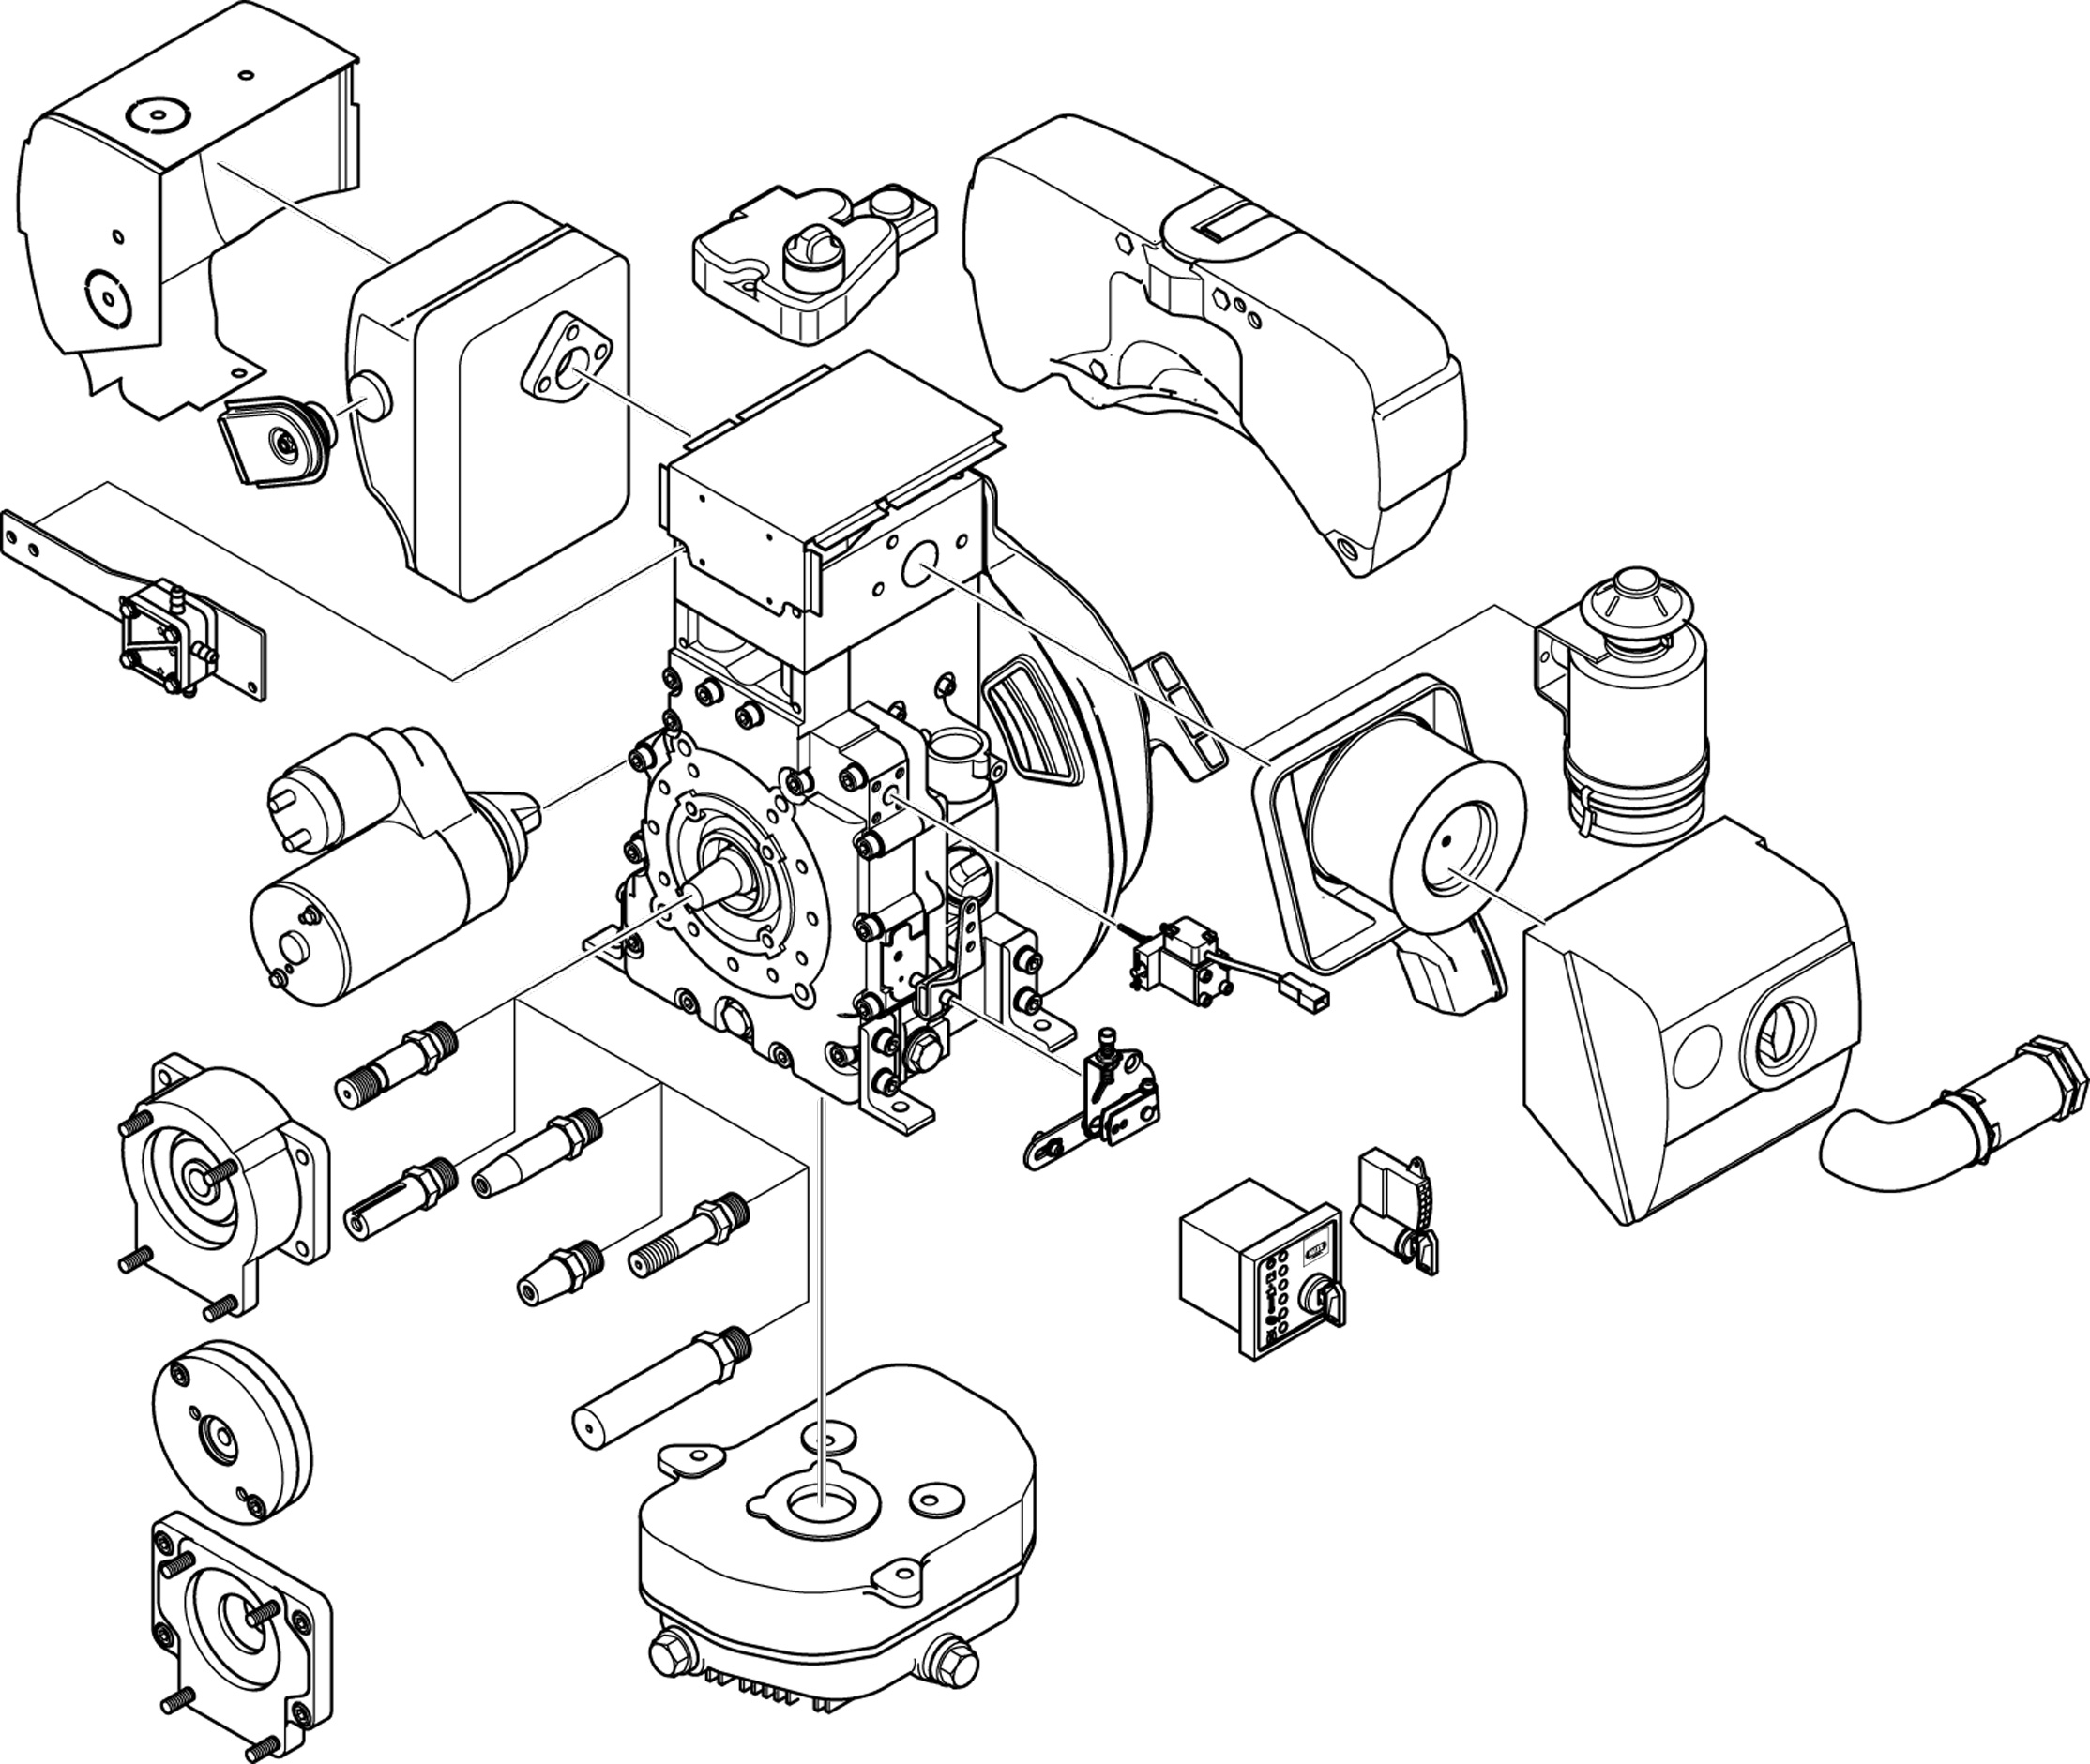 Engine Parts Drawing At Free For Personal Use Car Diagram 499x390 All Automotive 2228x1881 B Series Small Diesel Single Cylinder